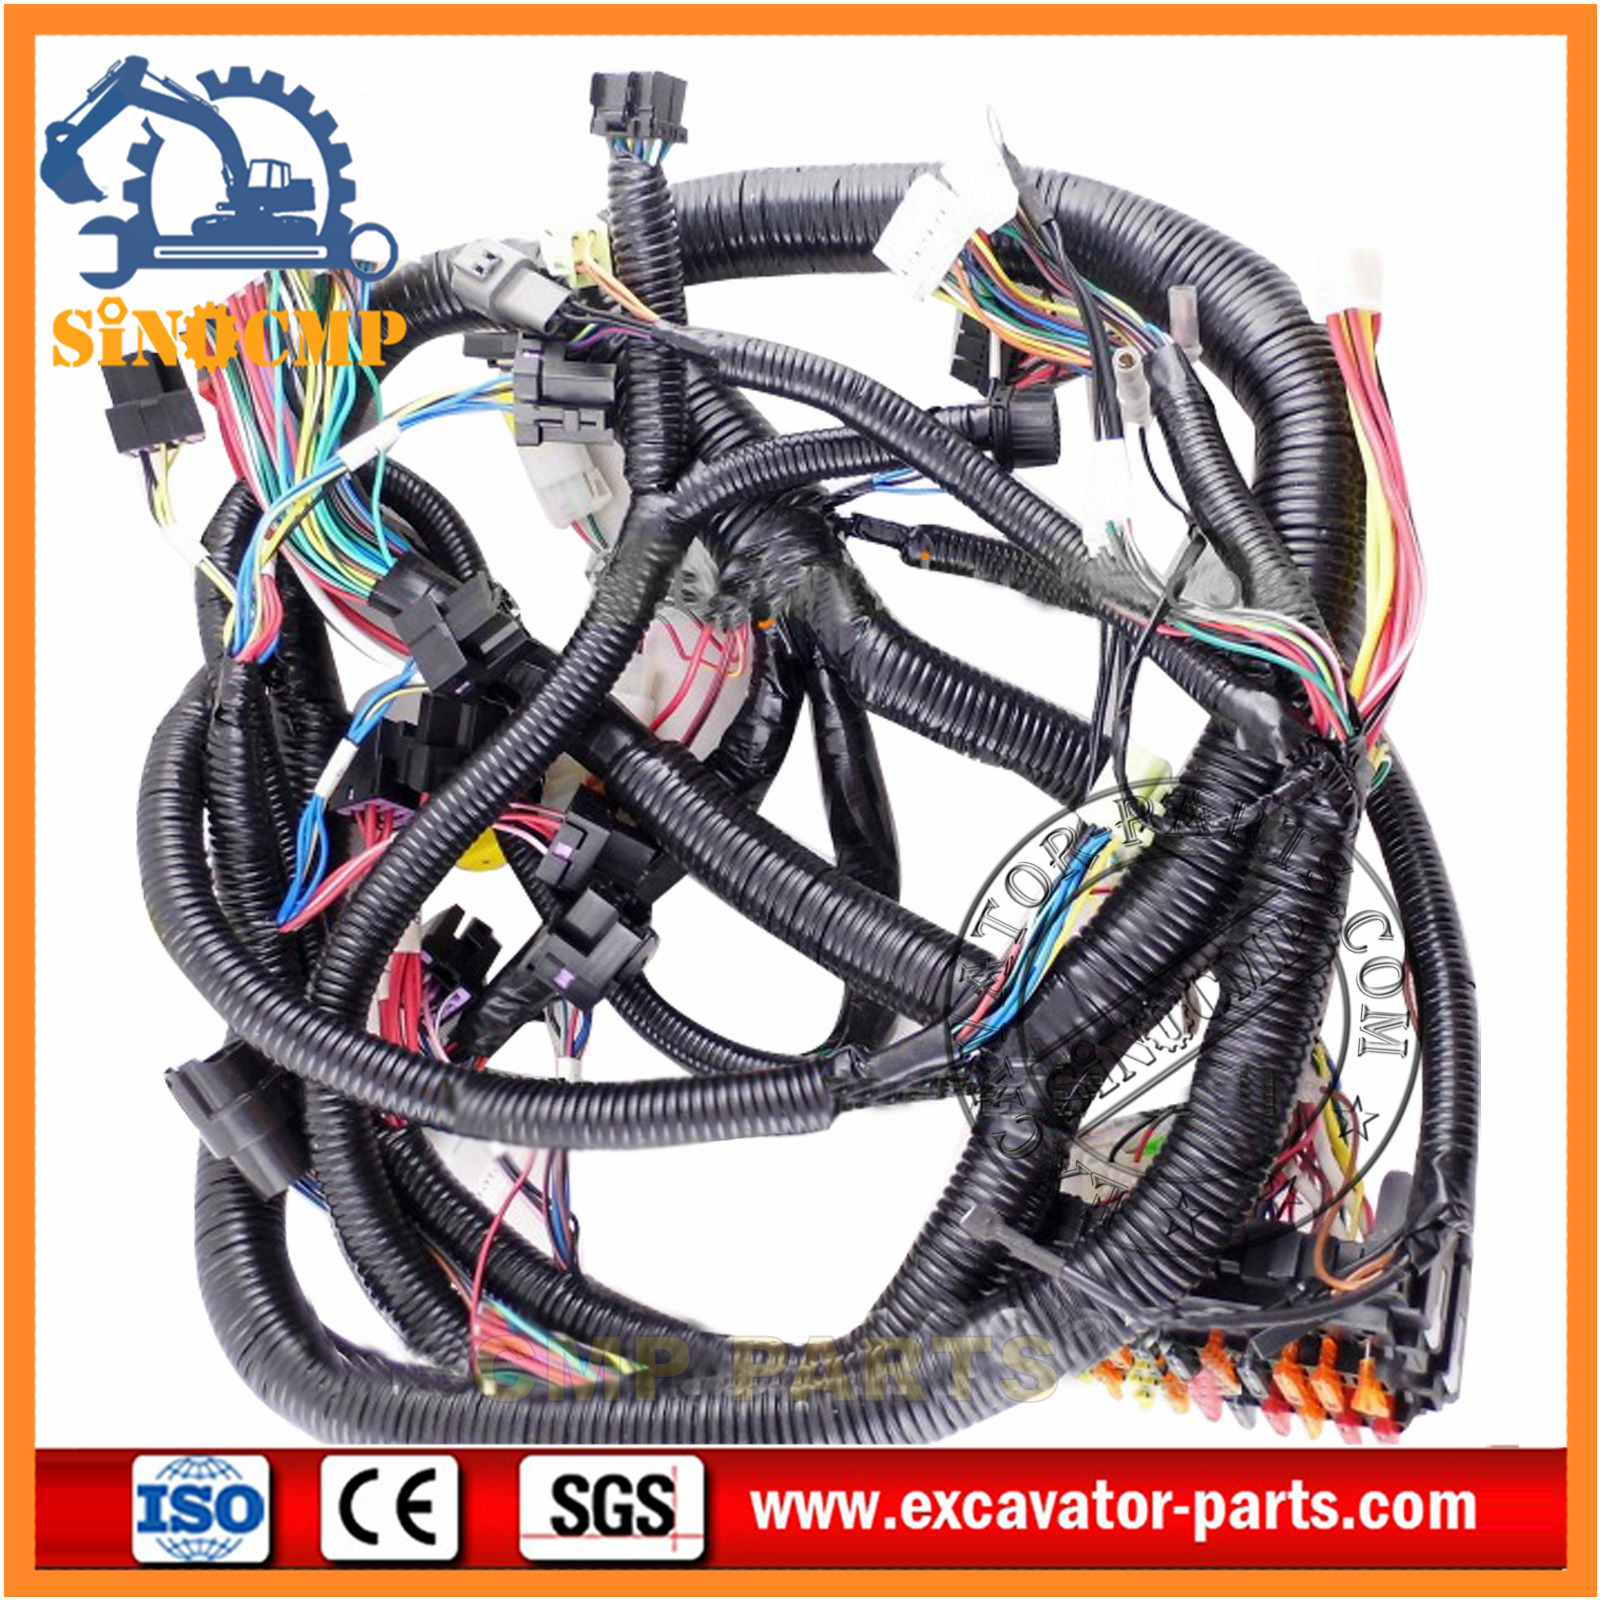 hitachi wire harness for ex100-2/3 ex200-2/3 | hitachi ... wire toner wiring harness #8